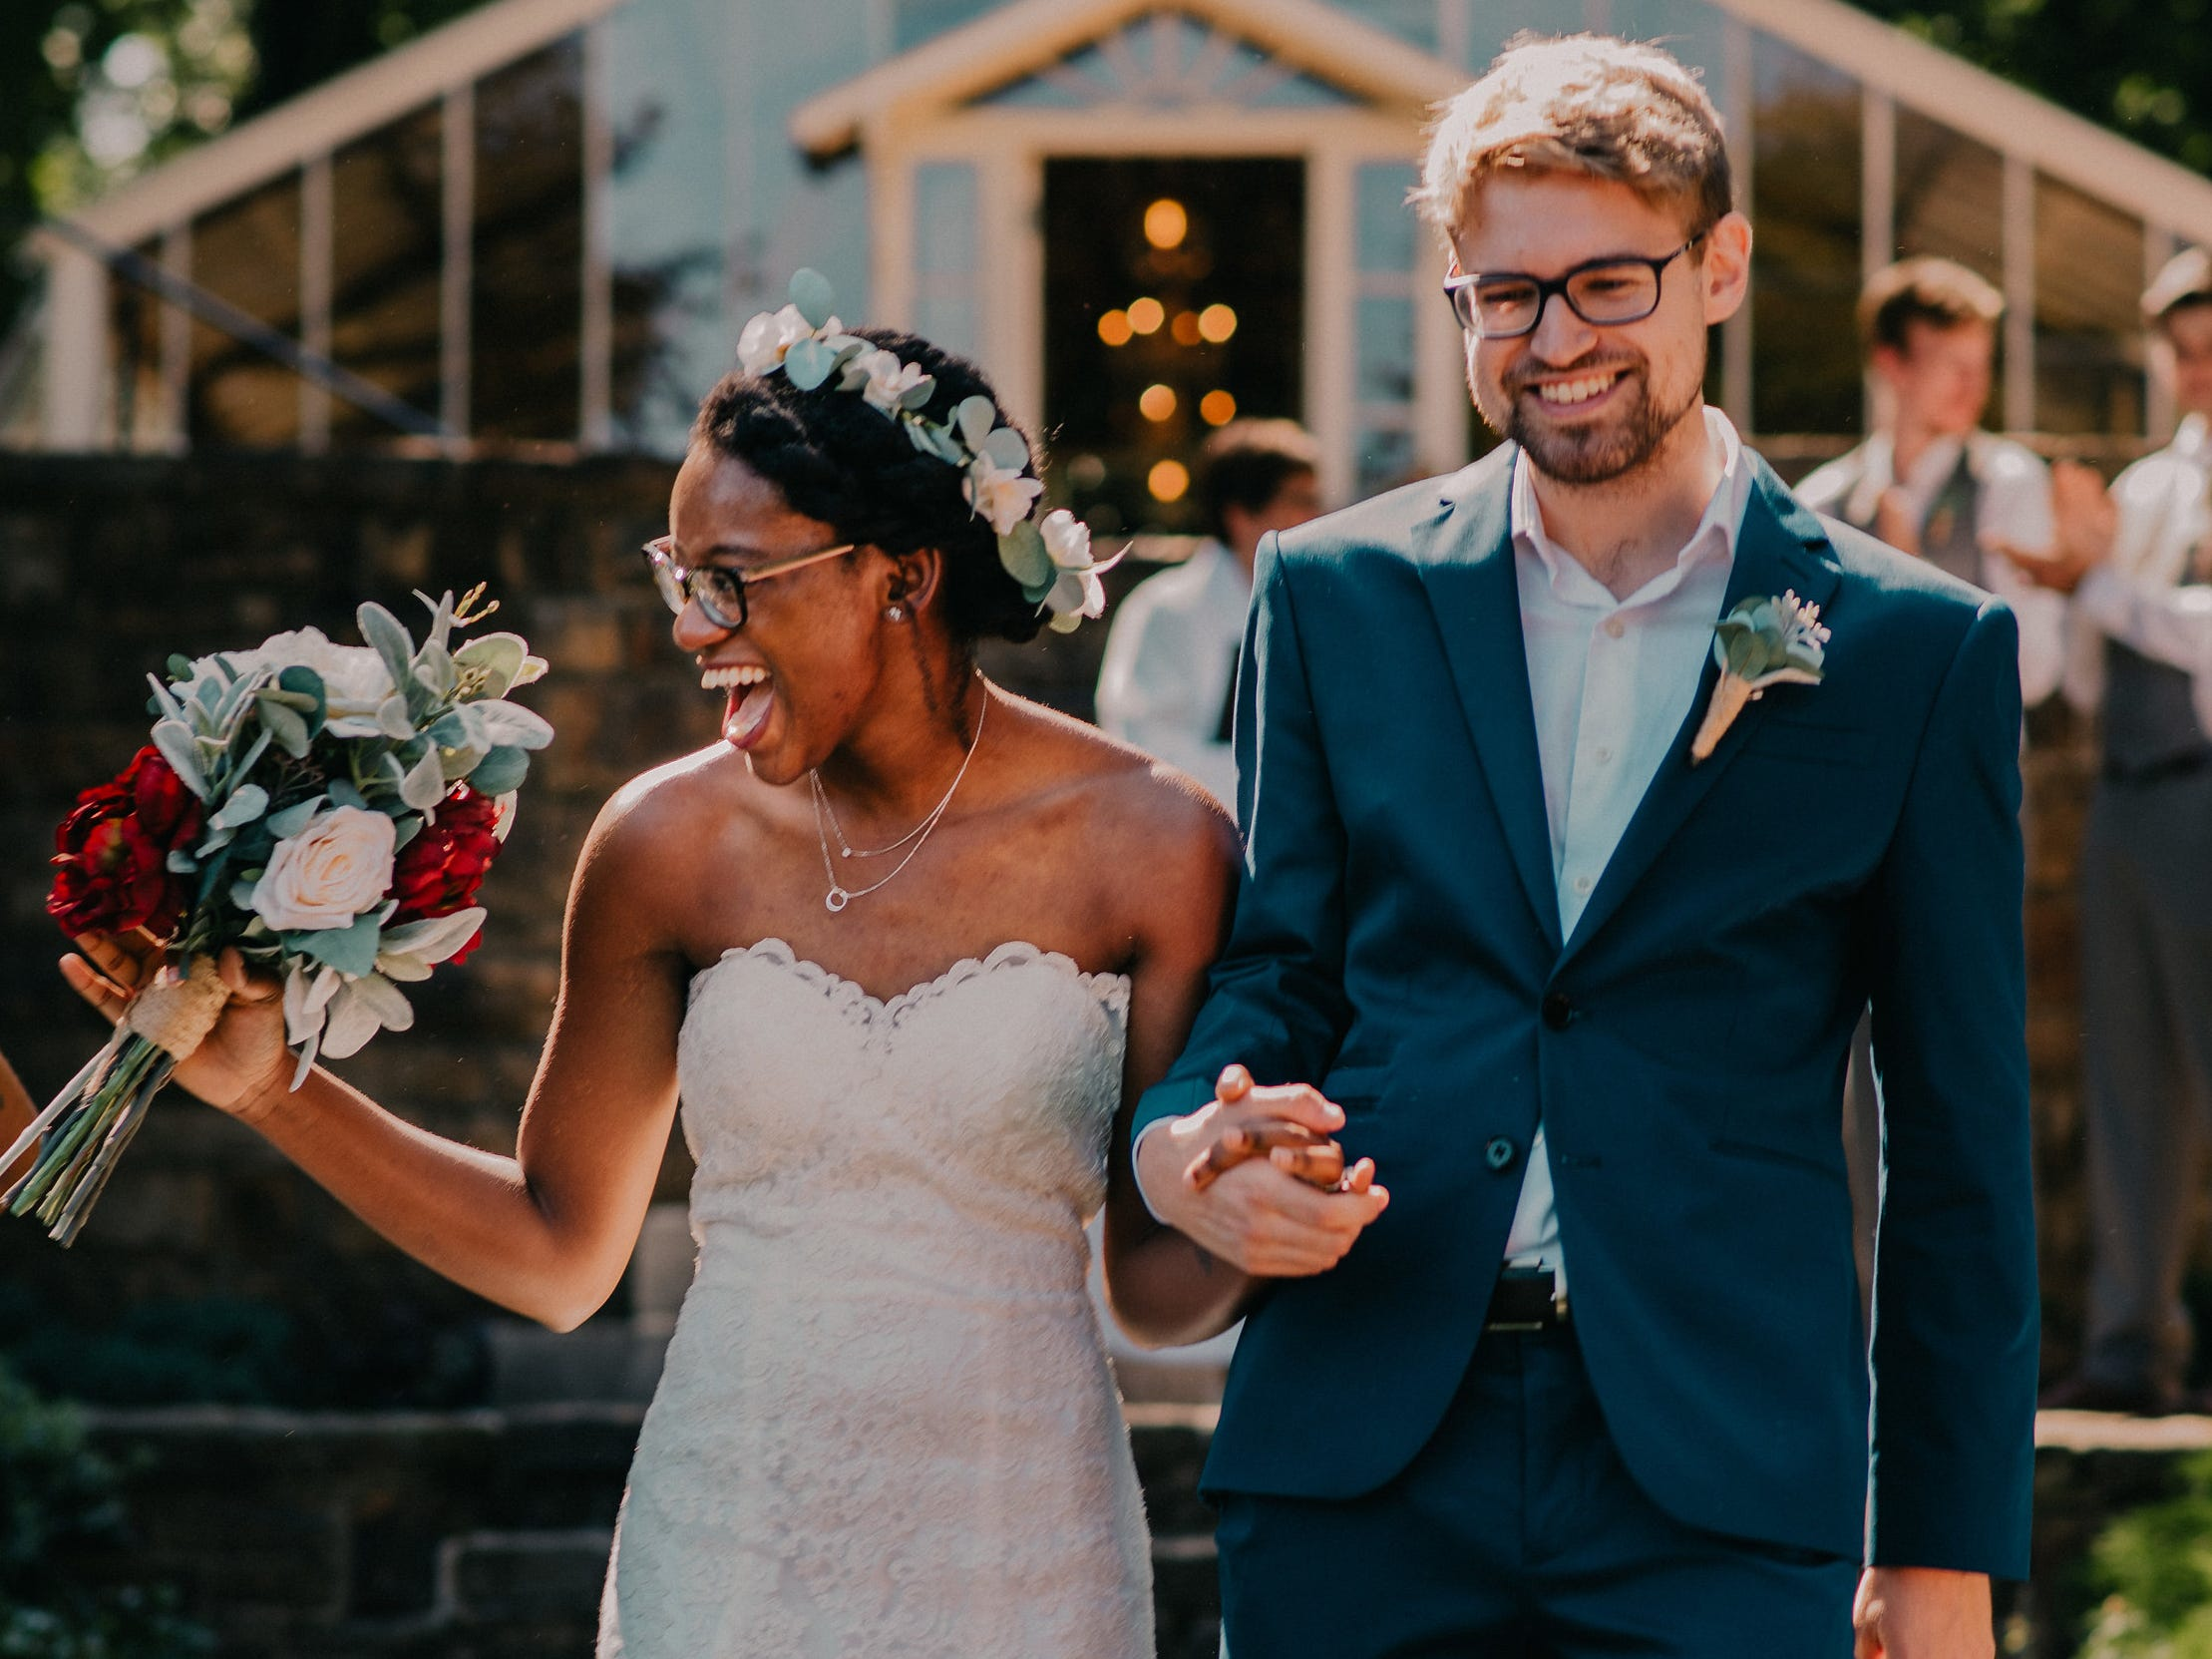 Taryn Blake Events, a York-based wedding and event planning company, was recently featured in a Forbes article about entrepreneurs who are shaking up the wedding industry. This was one of their weddings.